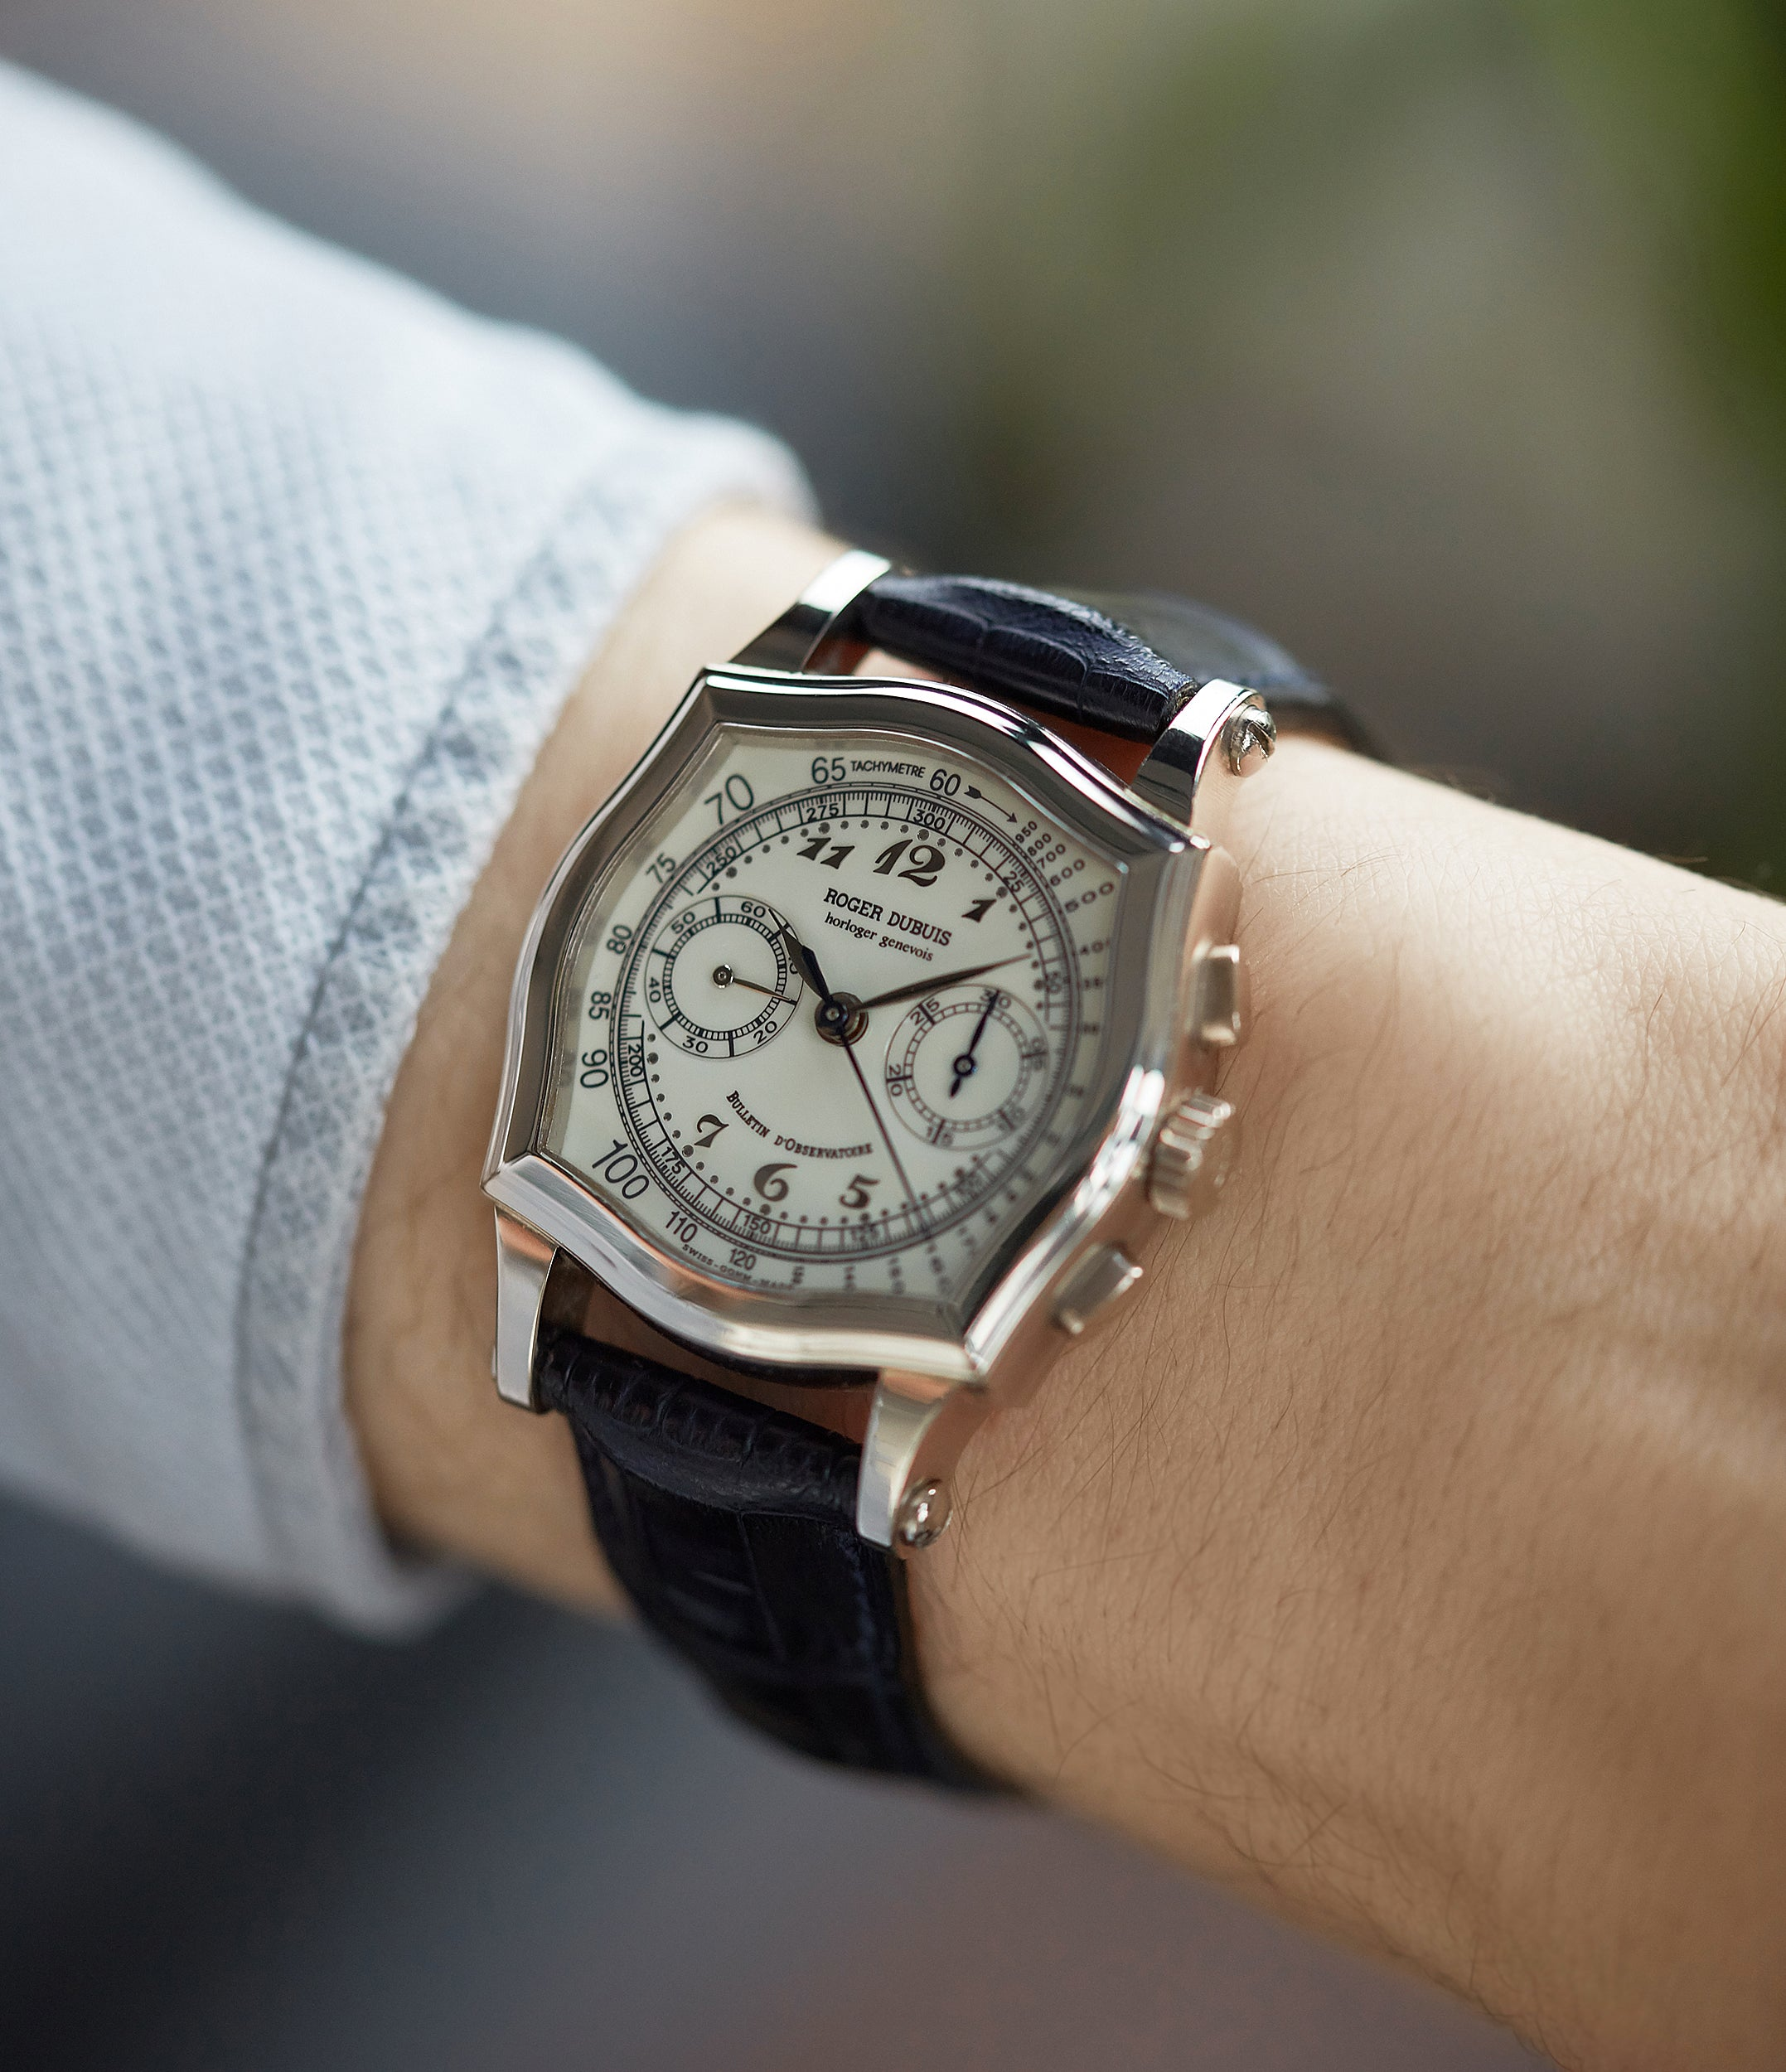 Sympathie Chronograph S37 Roger Dubuis Limited Edition white gold dress watch from independent watchmaker for sale online at A Collected Man London UK specialist of rare watches